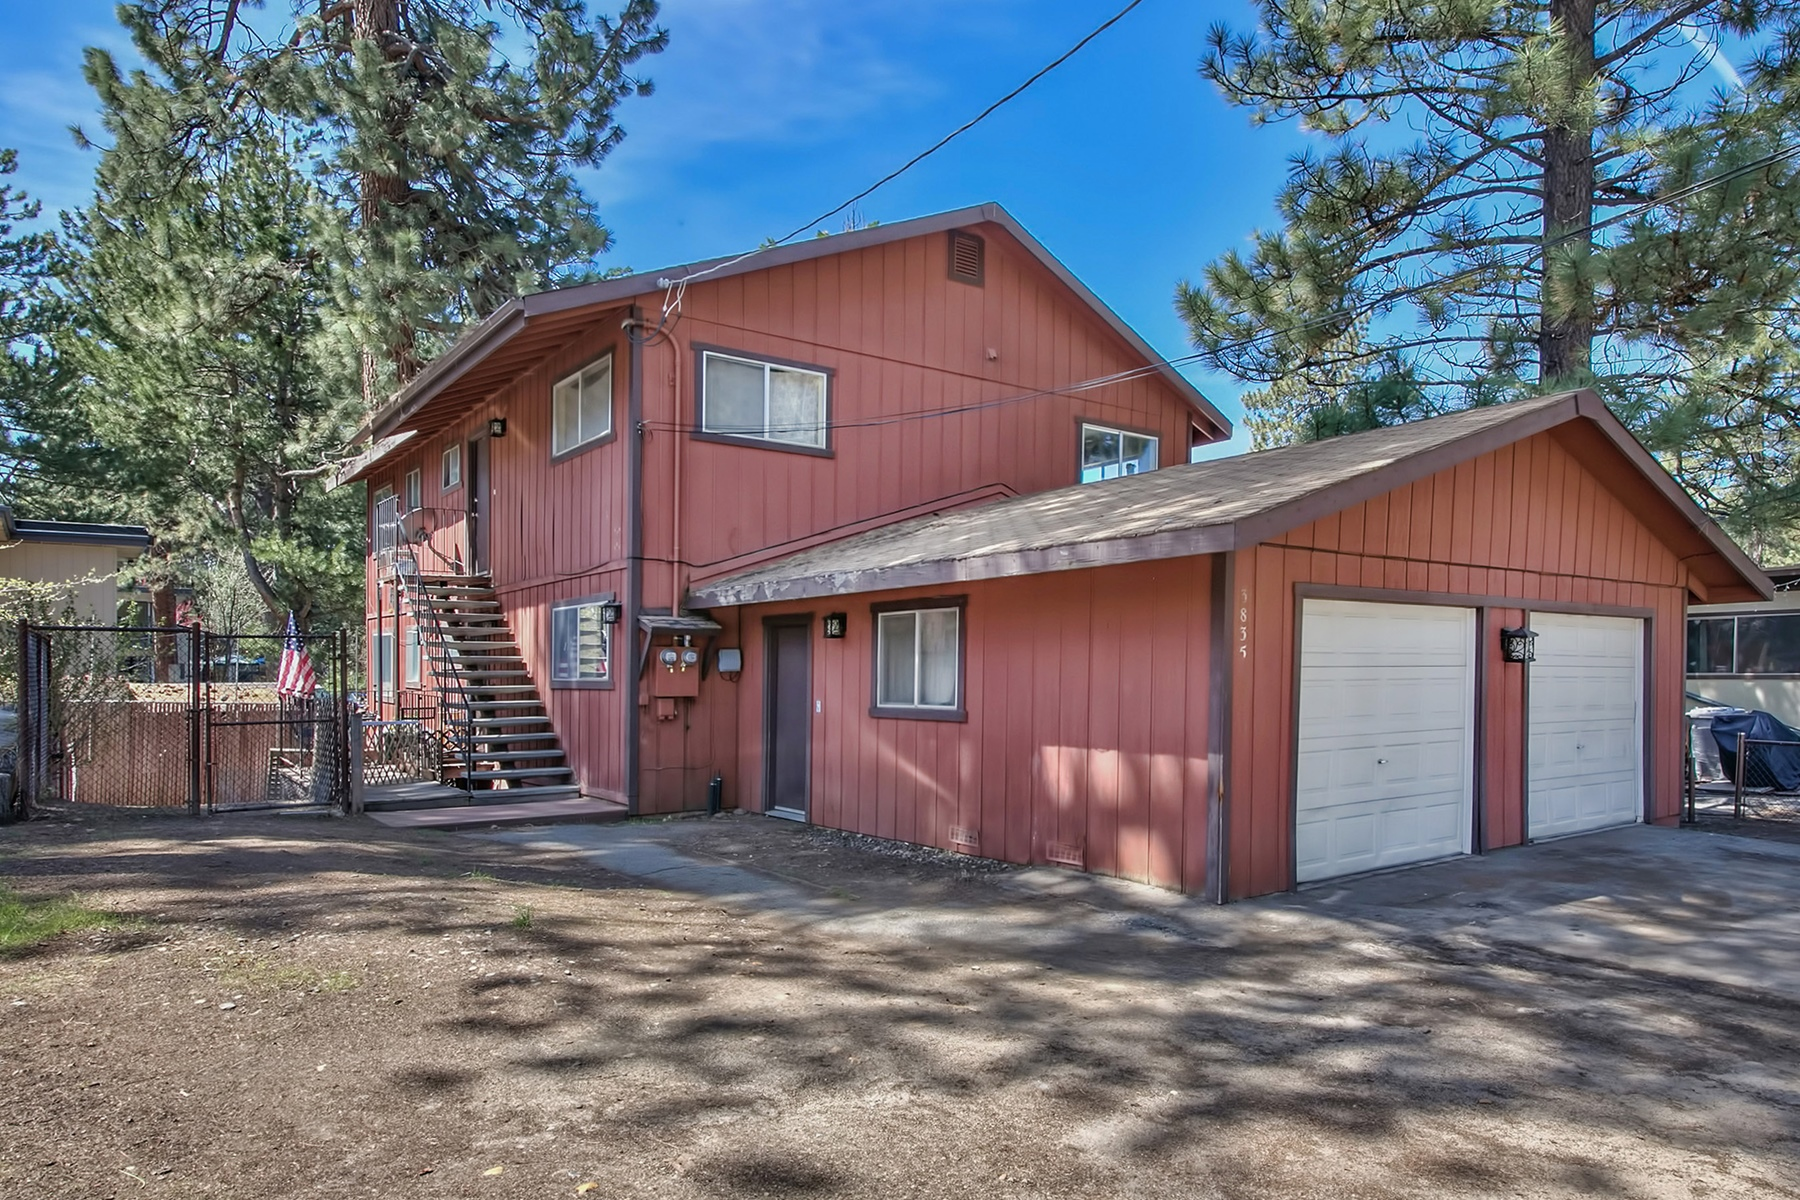 Single Family Home for Active at 3835 Pentagon Drive, South Lake Tahoe, California 96150 South Lake Tahoe, California 96150 United States